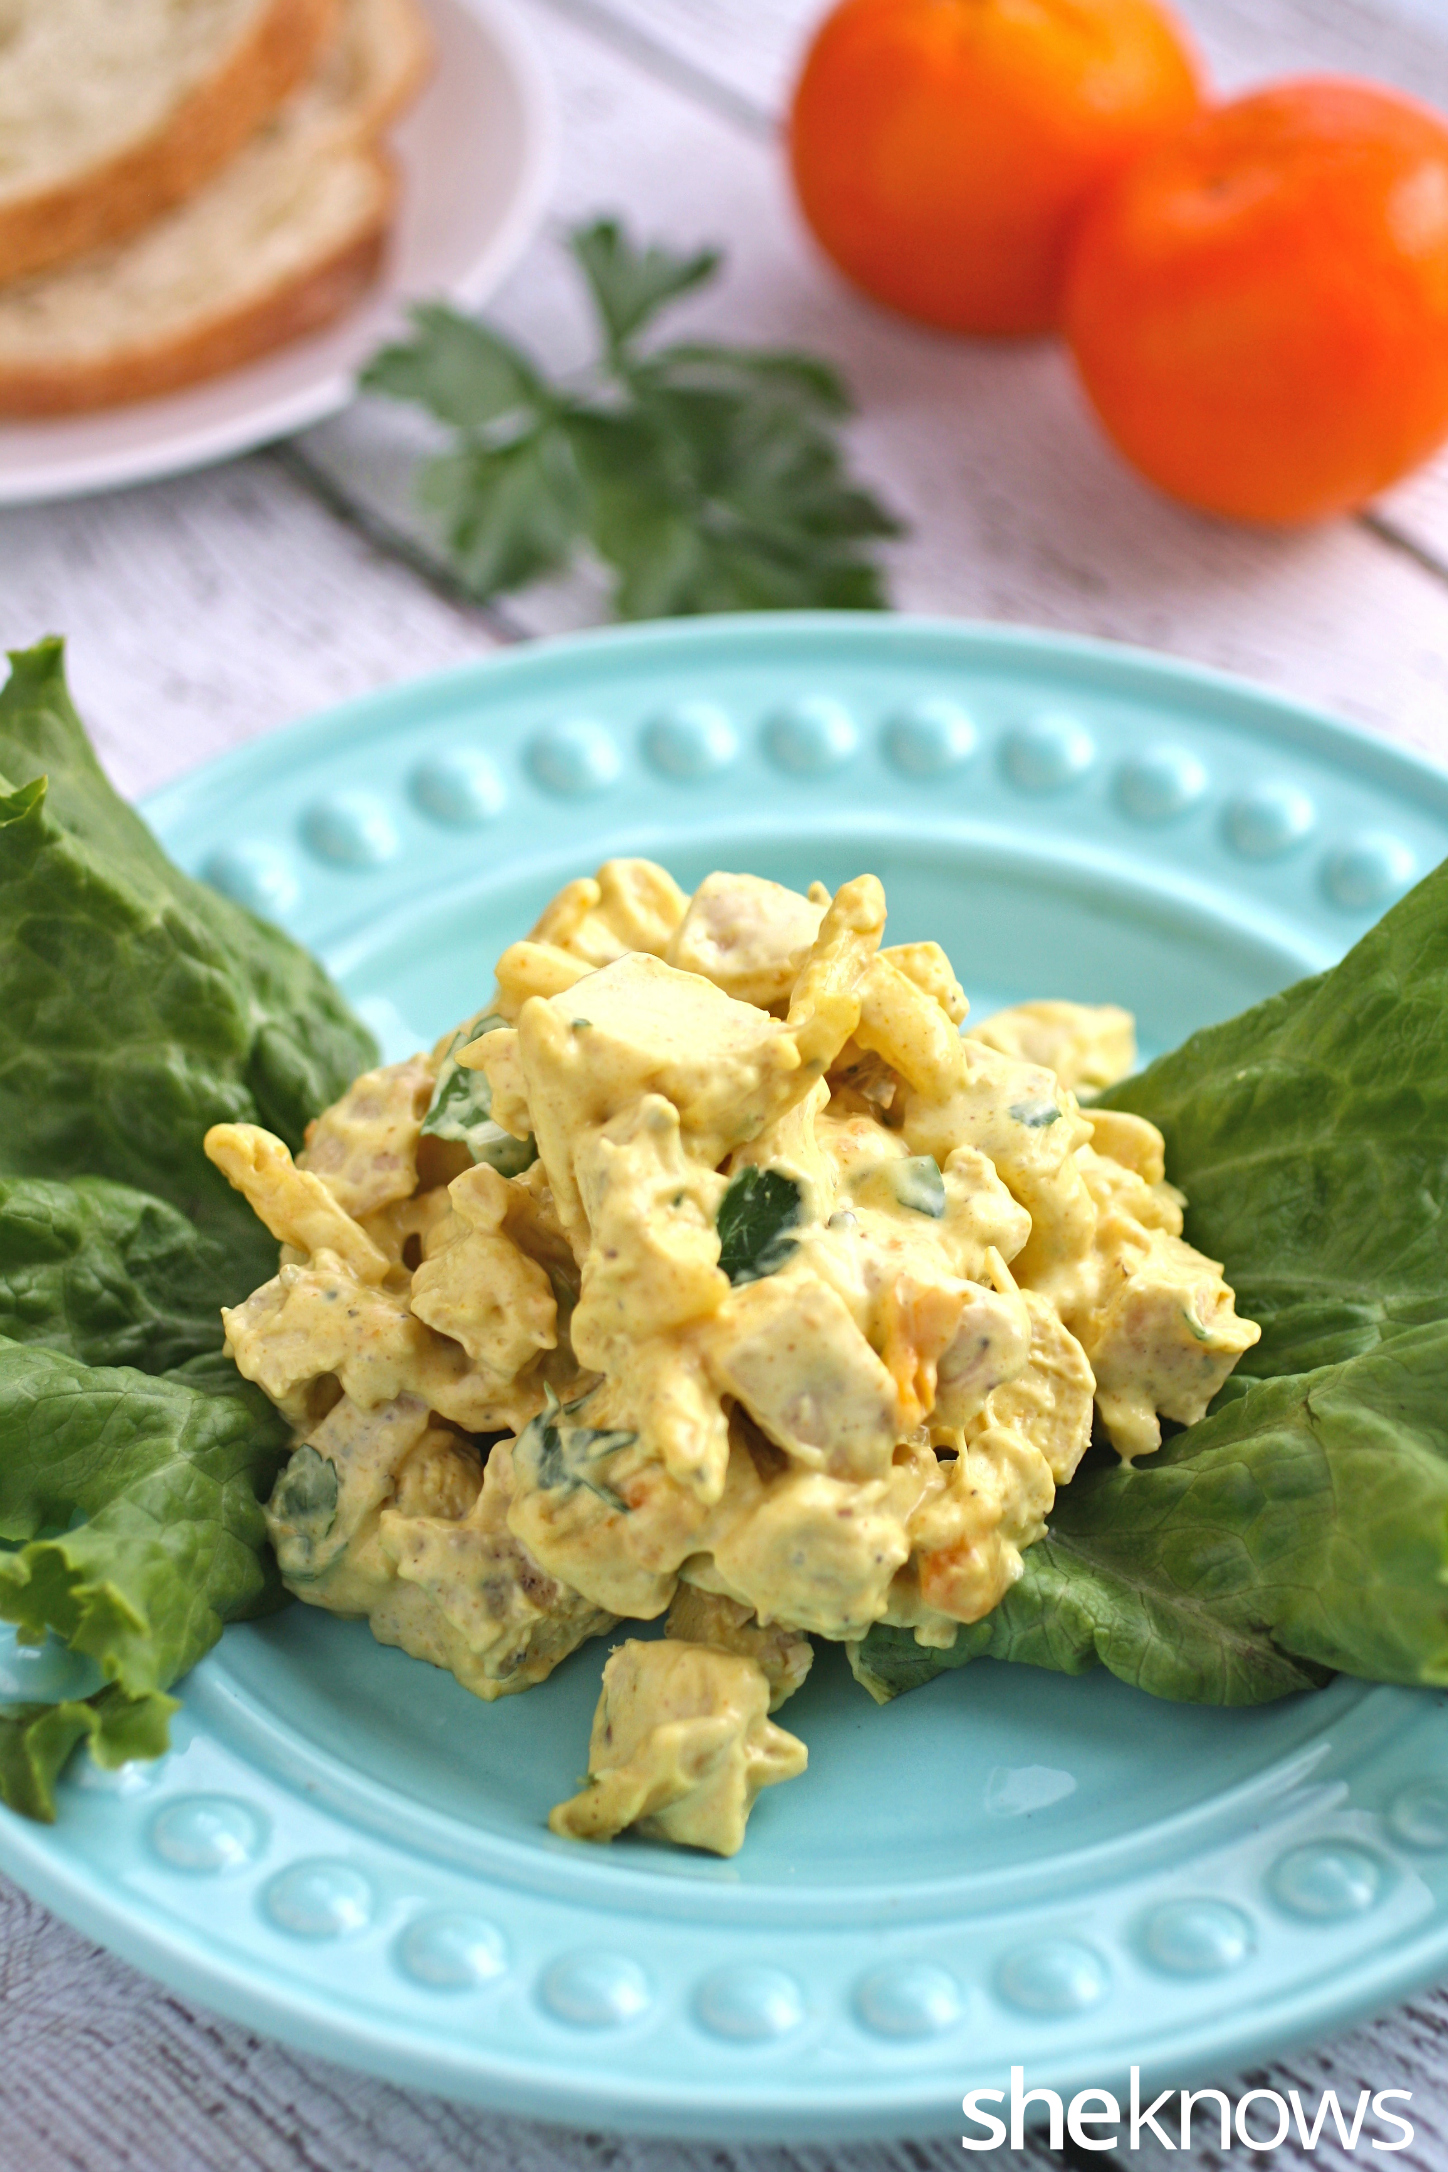 Coronation chicken salad with toasted almonds is fit for a queen